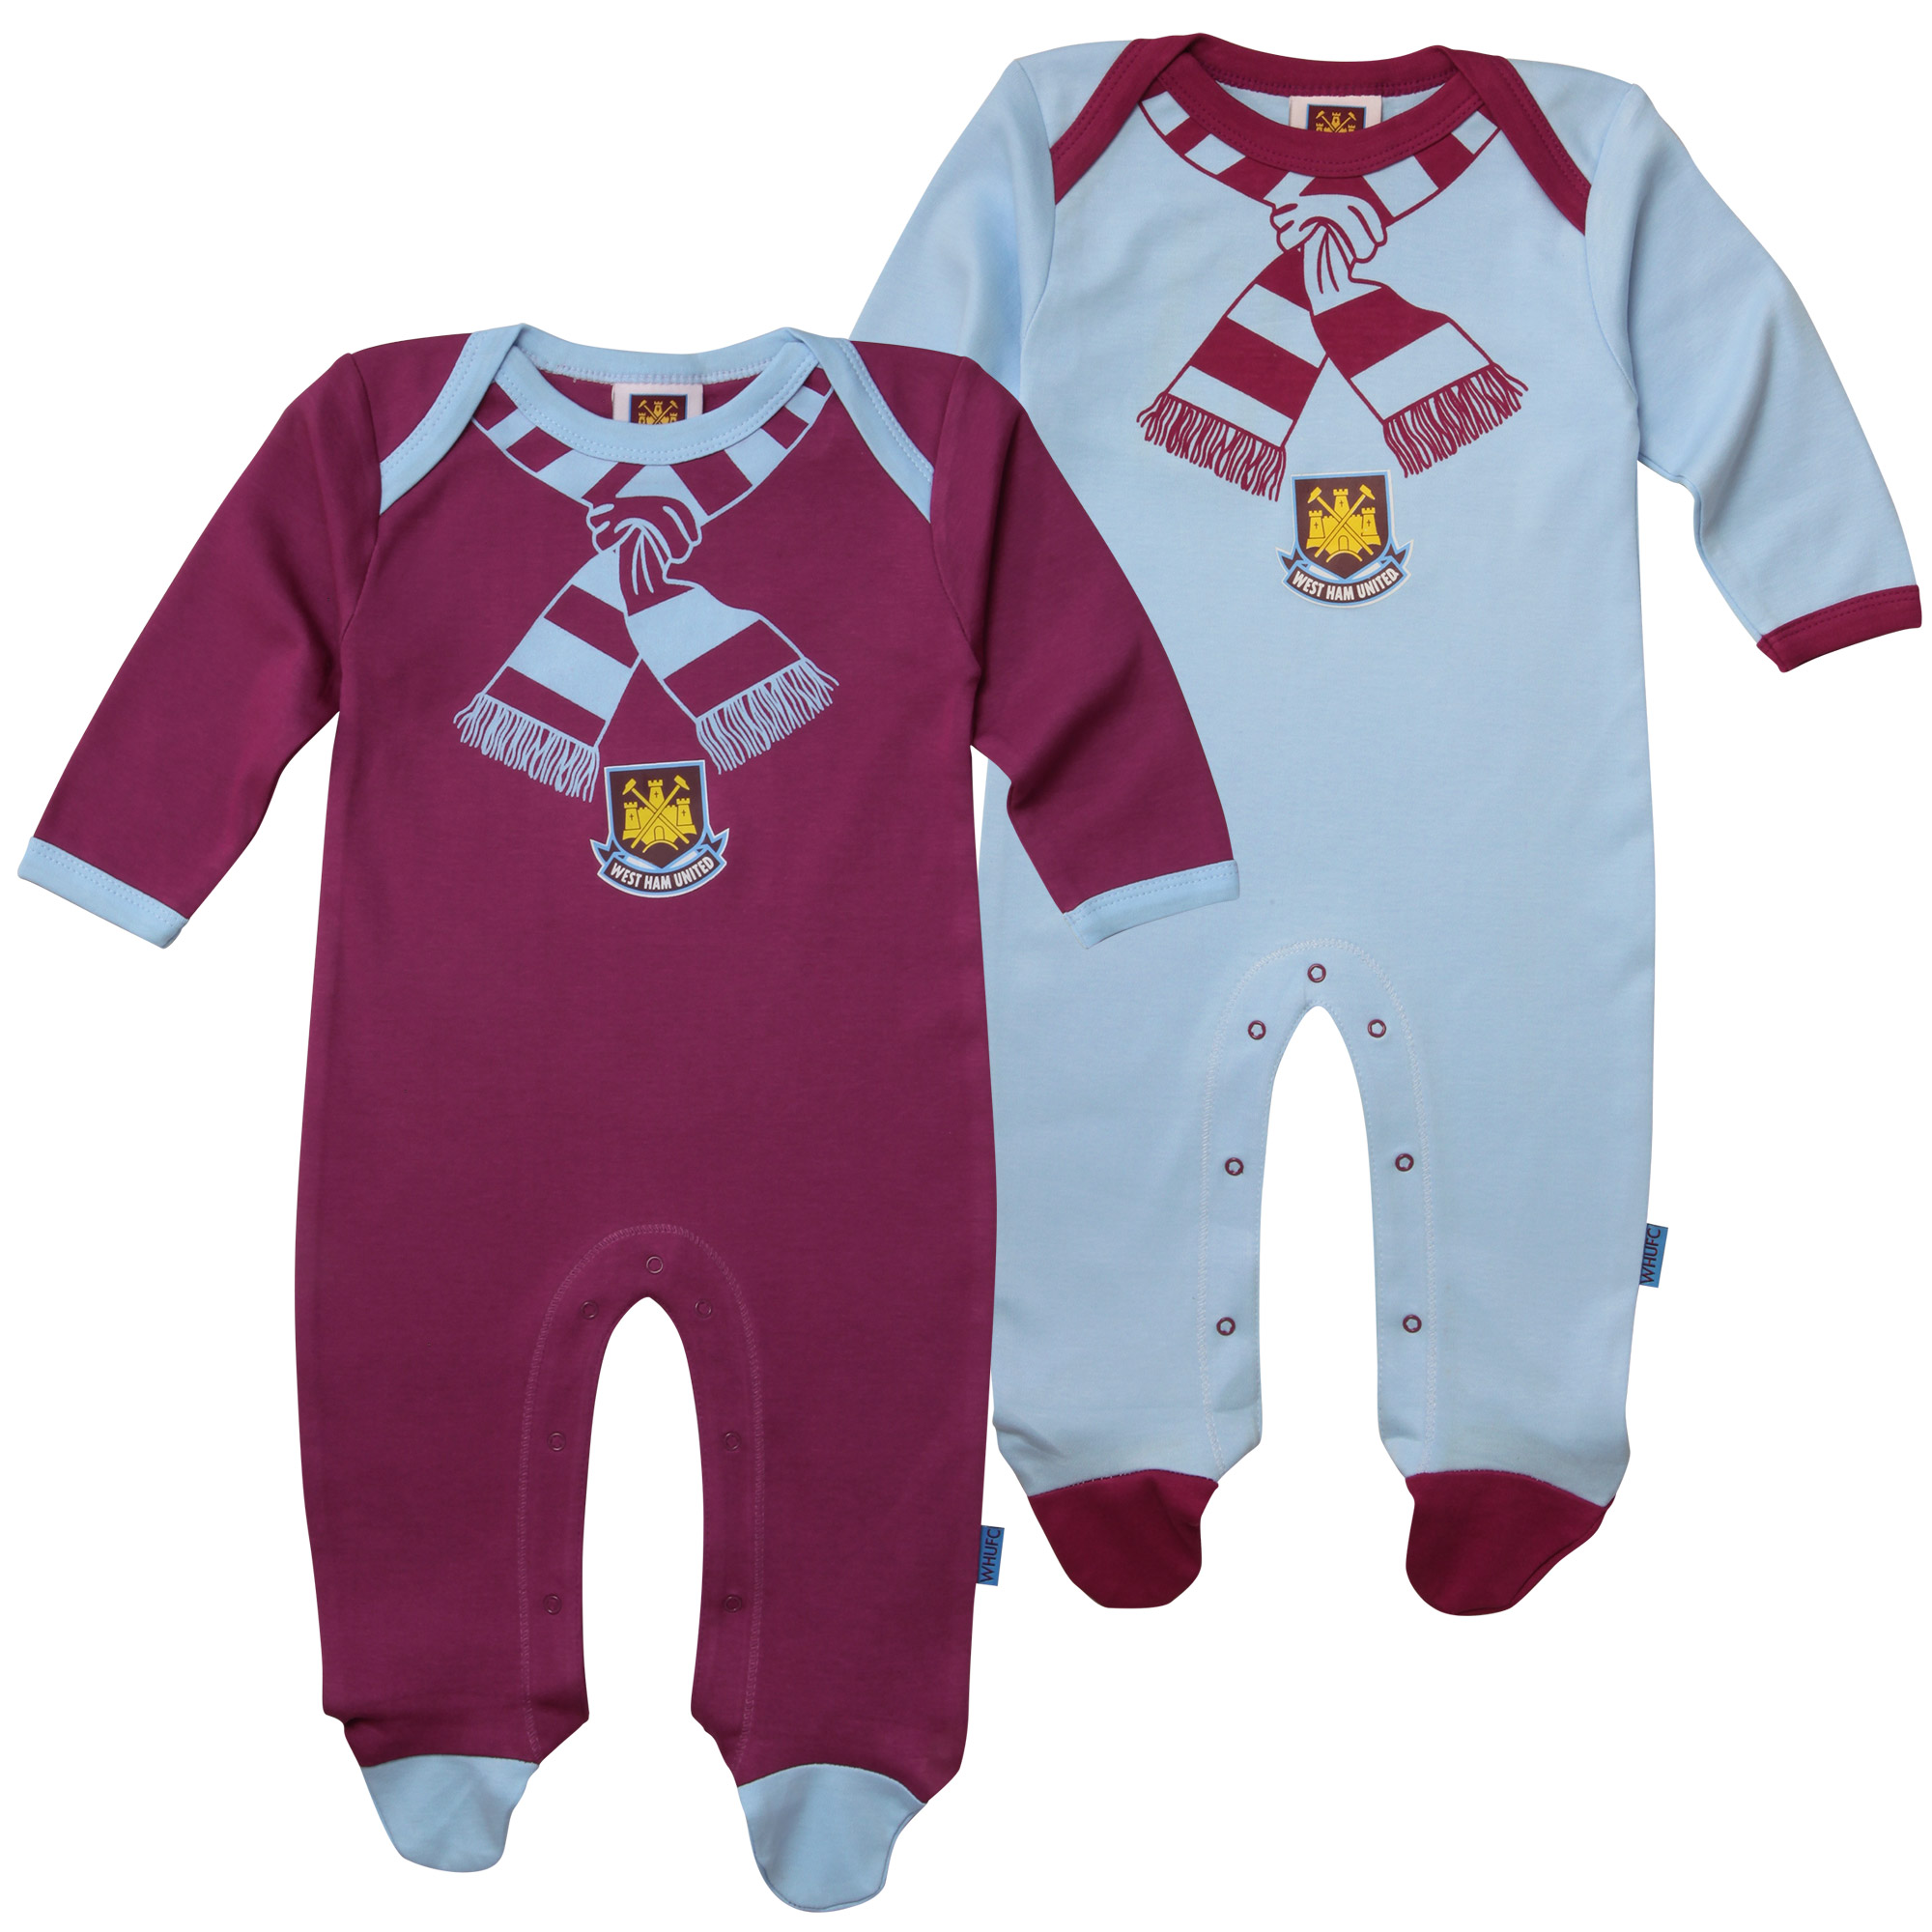 2 PACK SCARF SLEEPSUIT